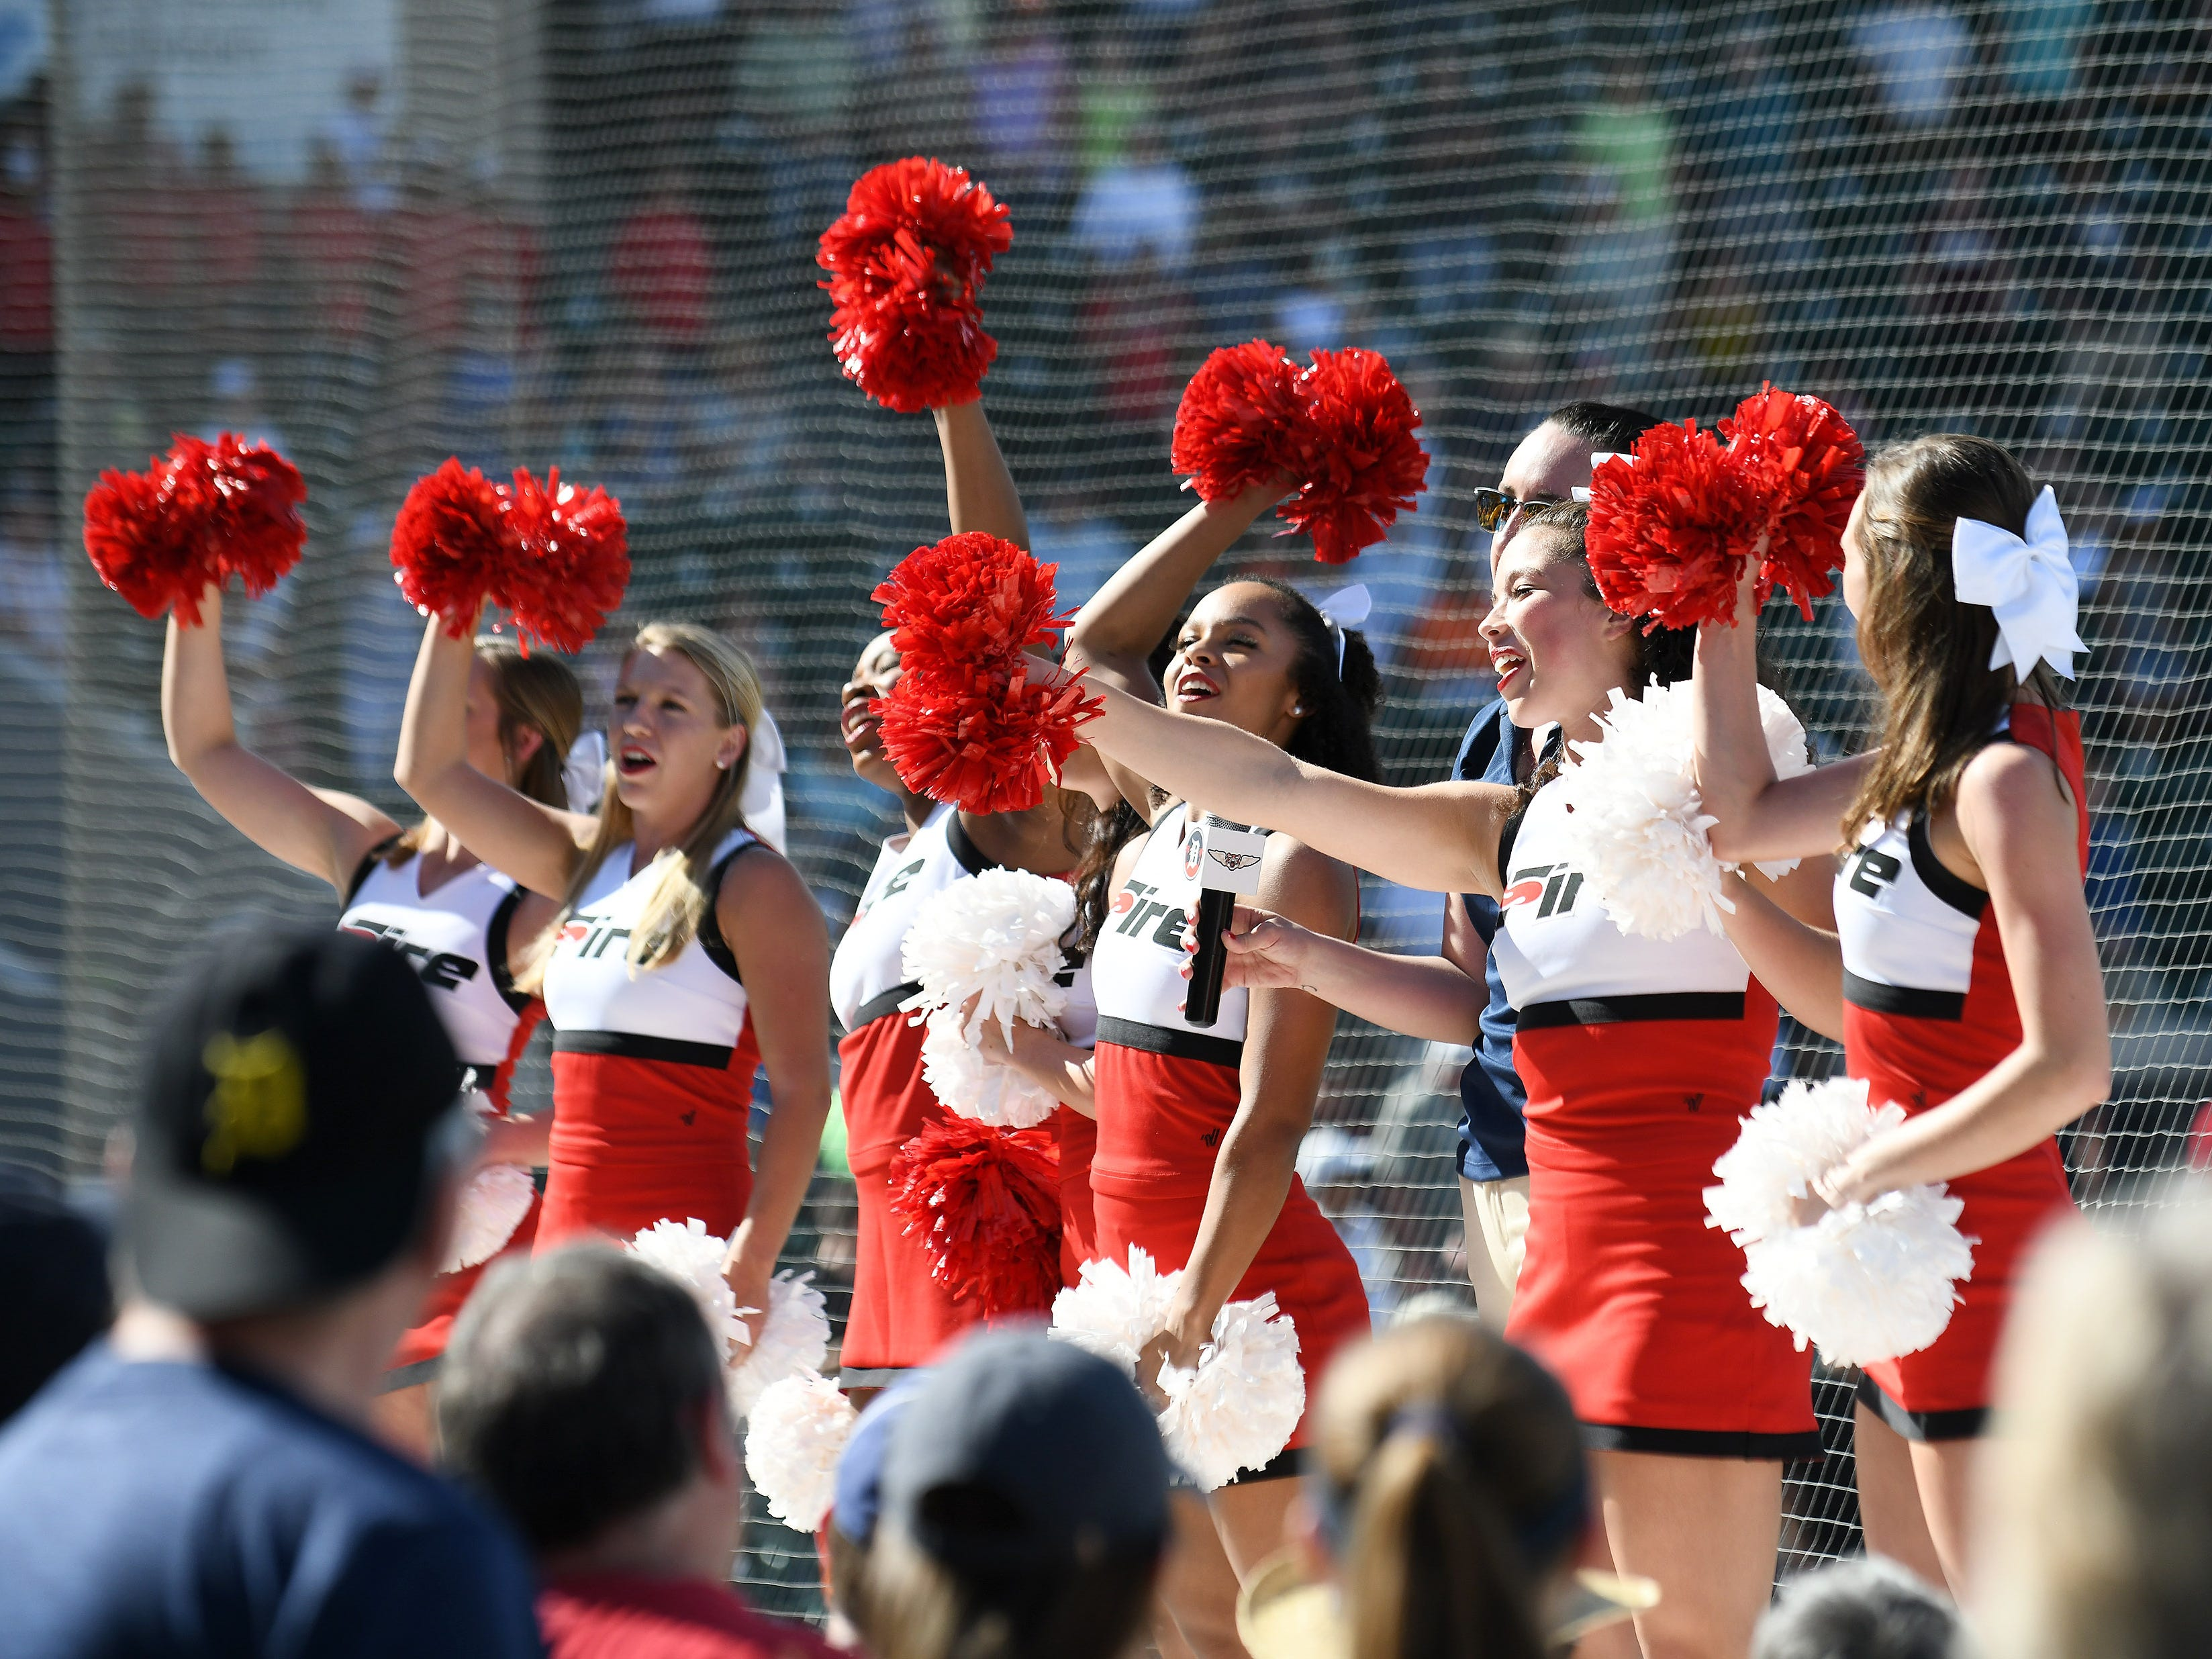 Southeastern University cheerleaders help lead the fans in singing 'Take me out to the ballgame' during the seventh inning stretch.